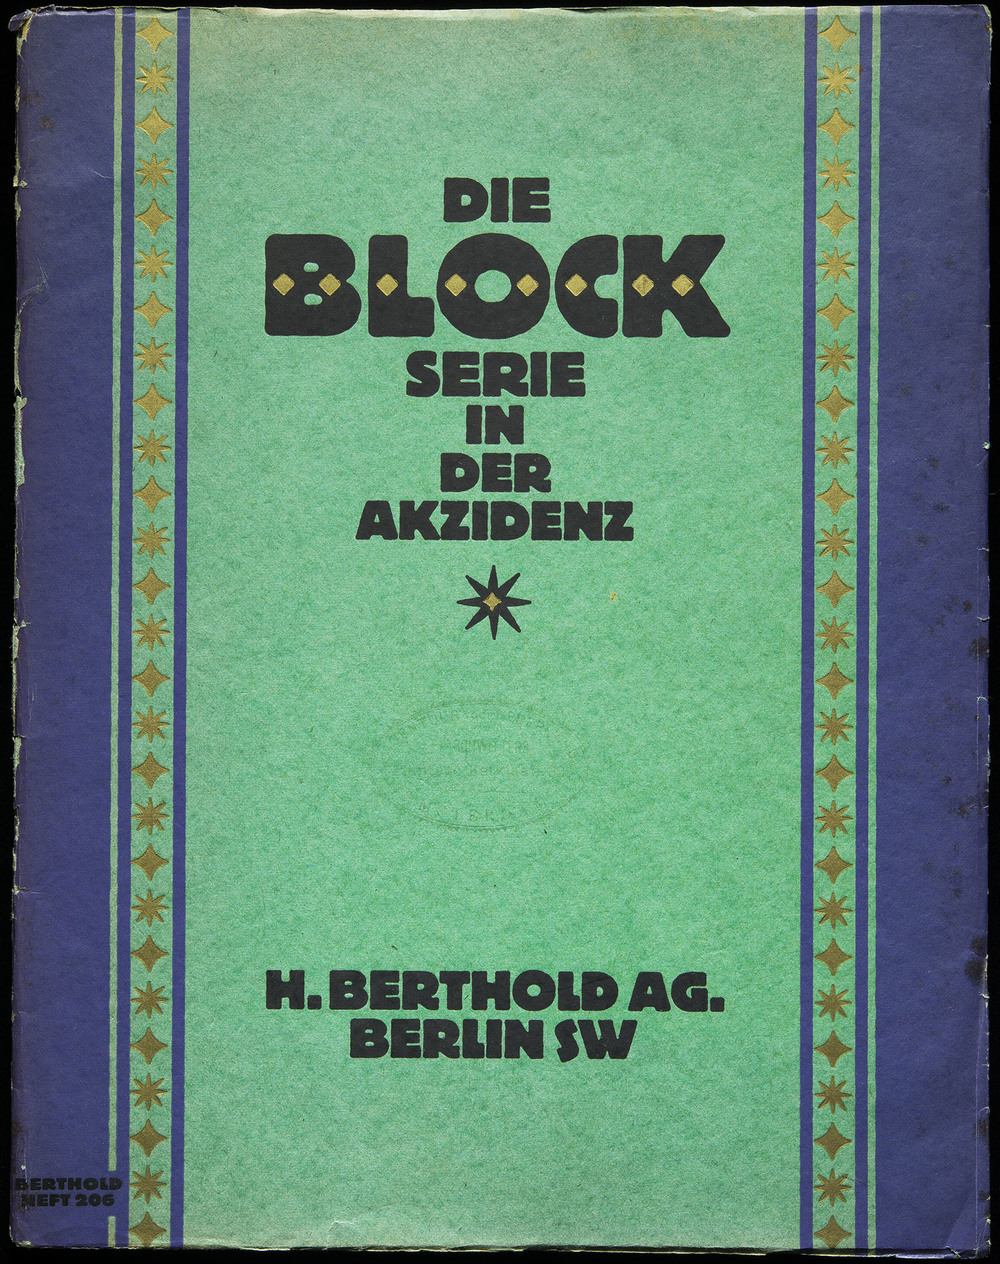 Hermann Hoffmann, specimen of  Block  series, Berthold, Berlin, 1921, 22.8 x 29.2 cm